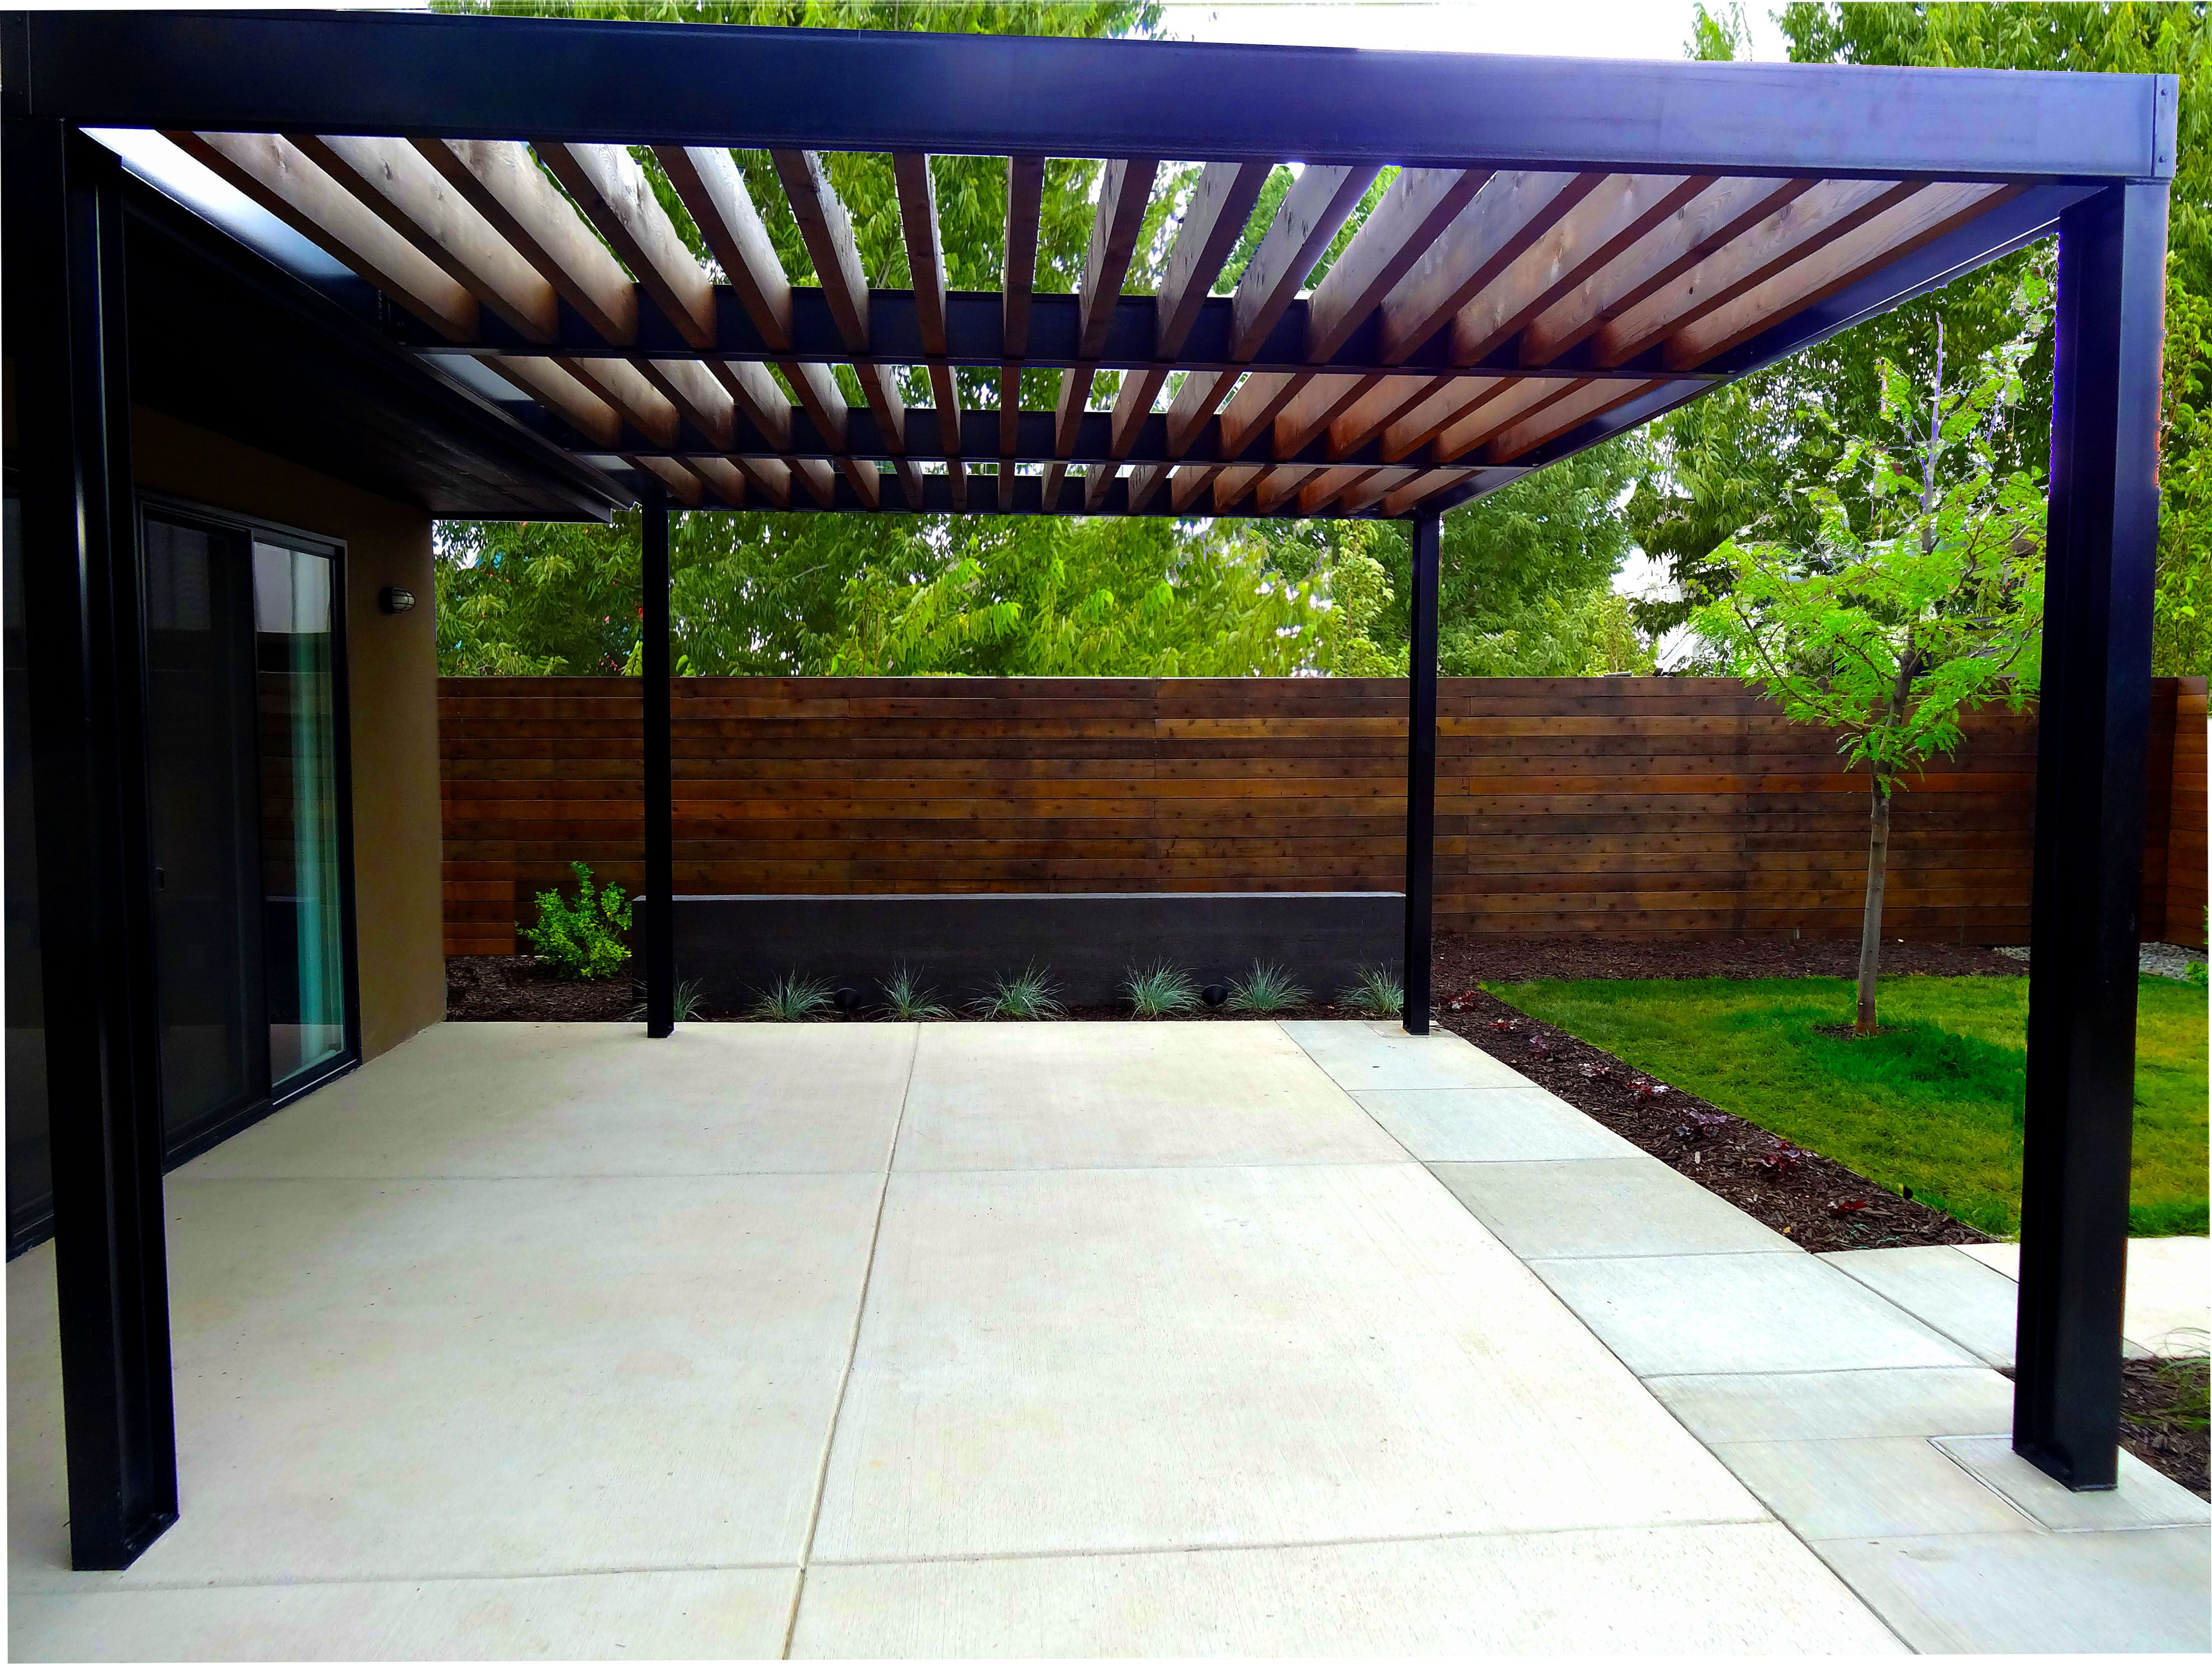 steel header and joists for trellis search awesome Steel Pergola Ideas id=66604